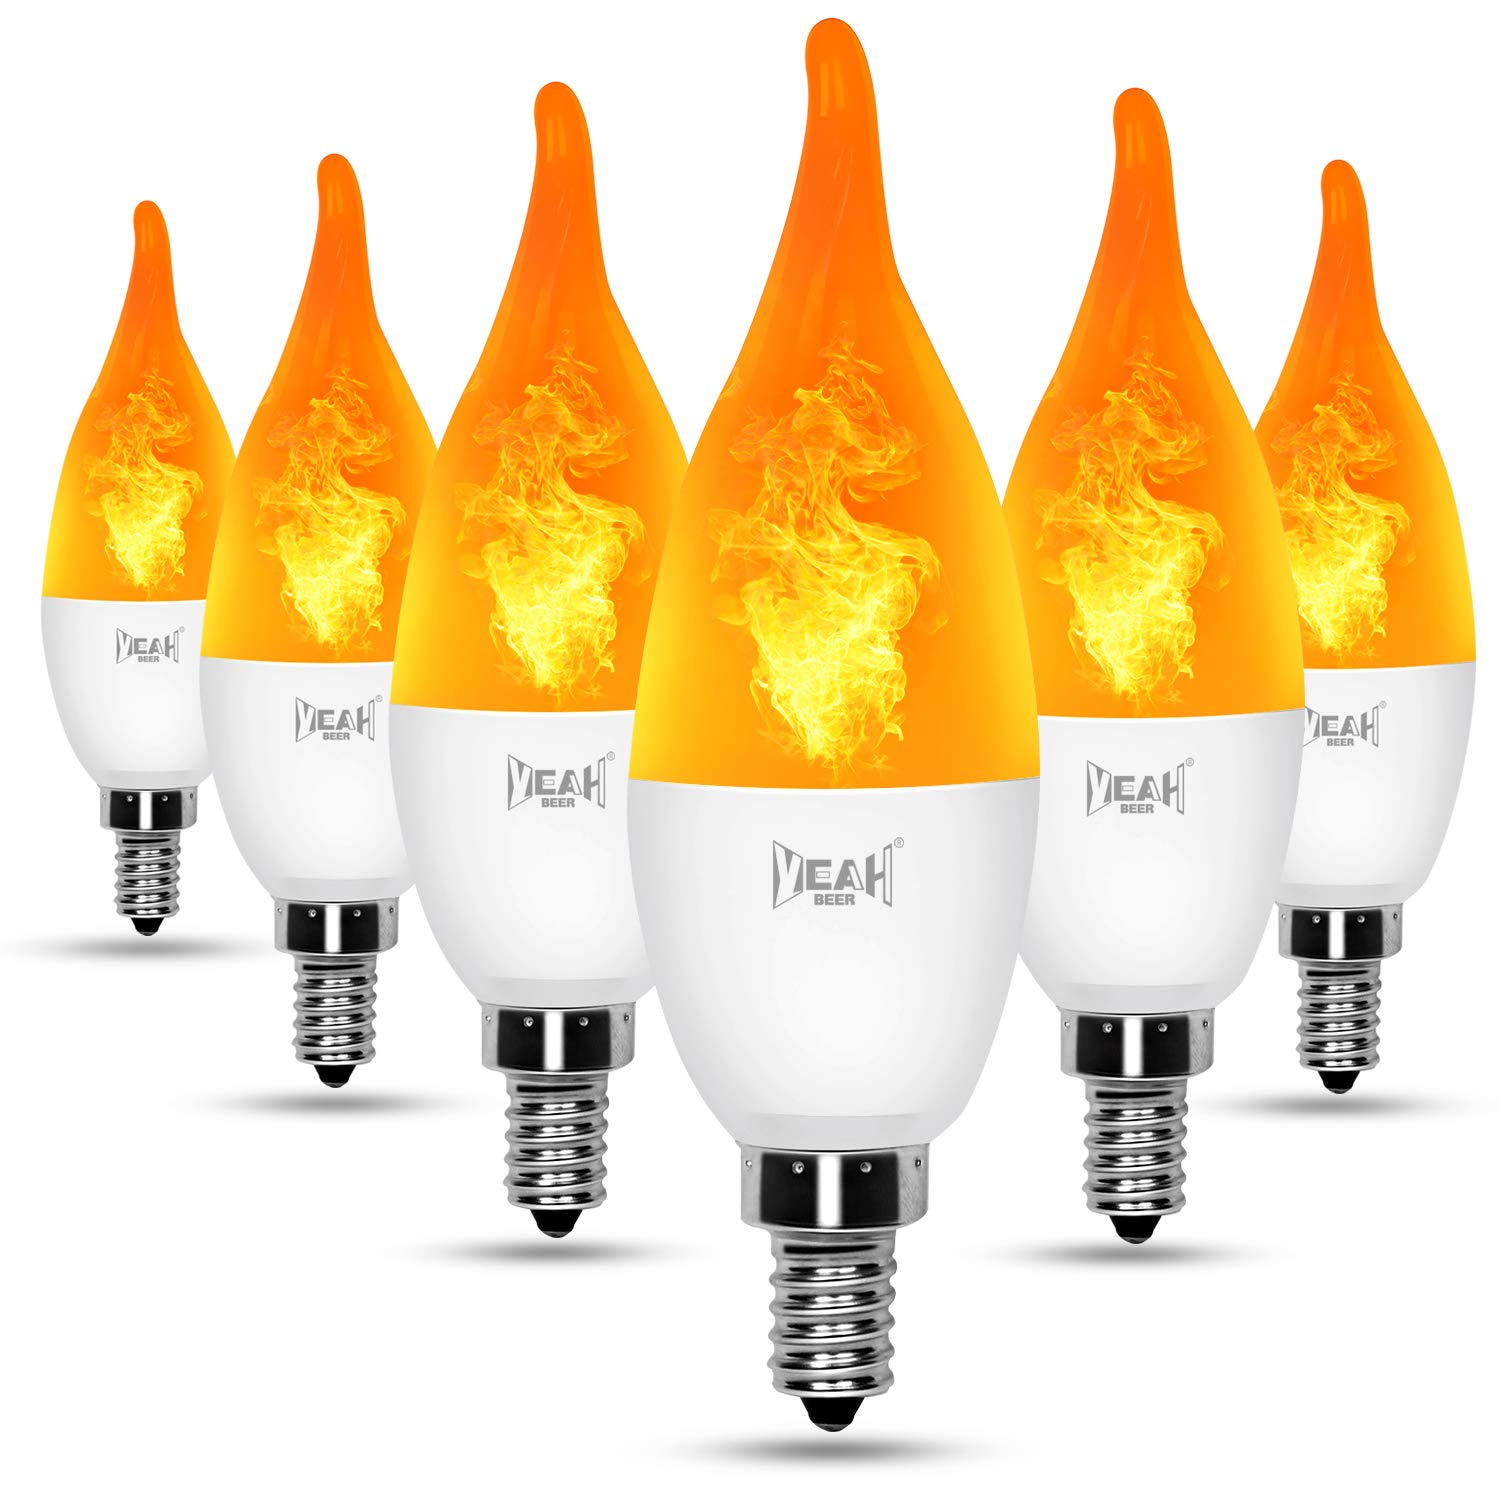 YEAHBEER E12 Flame Bulb LED Candelabra Light Bulbs,1.2 Watt Warm White LED Chandelier Bulbs,1800k Non-Dimmable Candle Light Bulbs, Flame Tip(6 Pack)